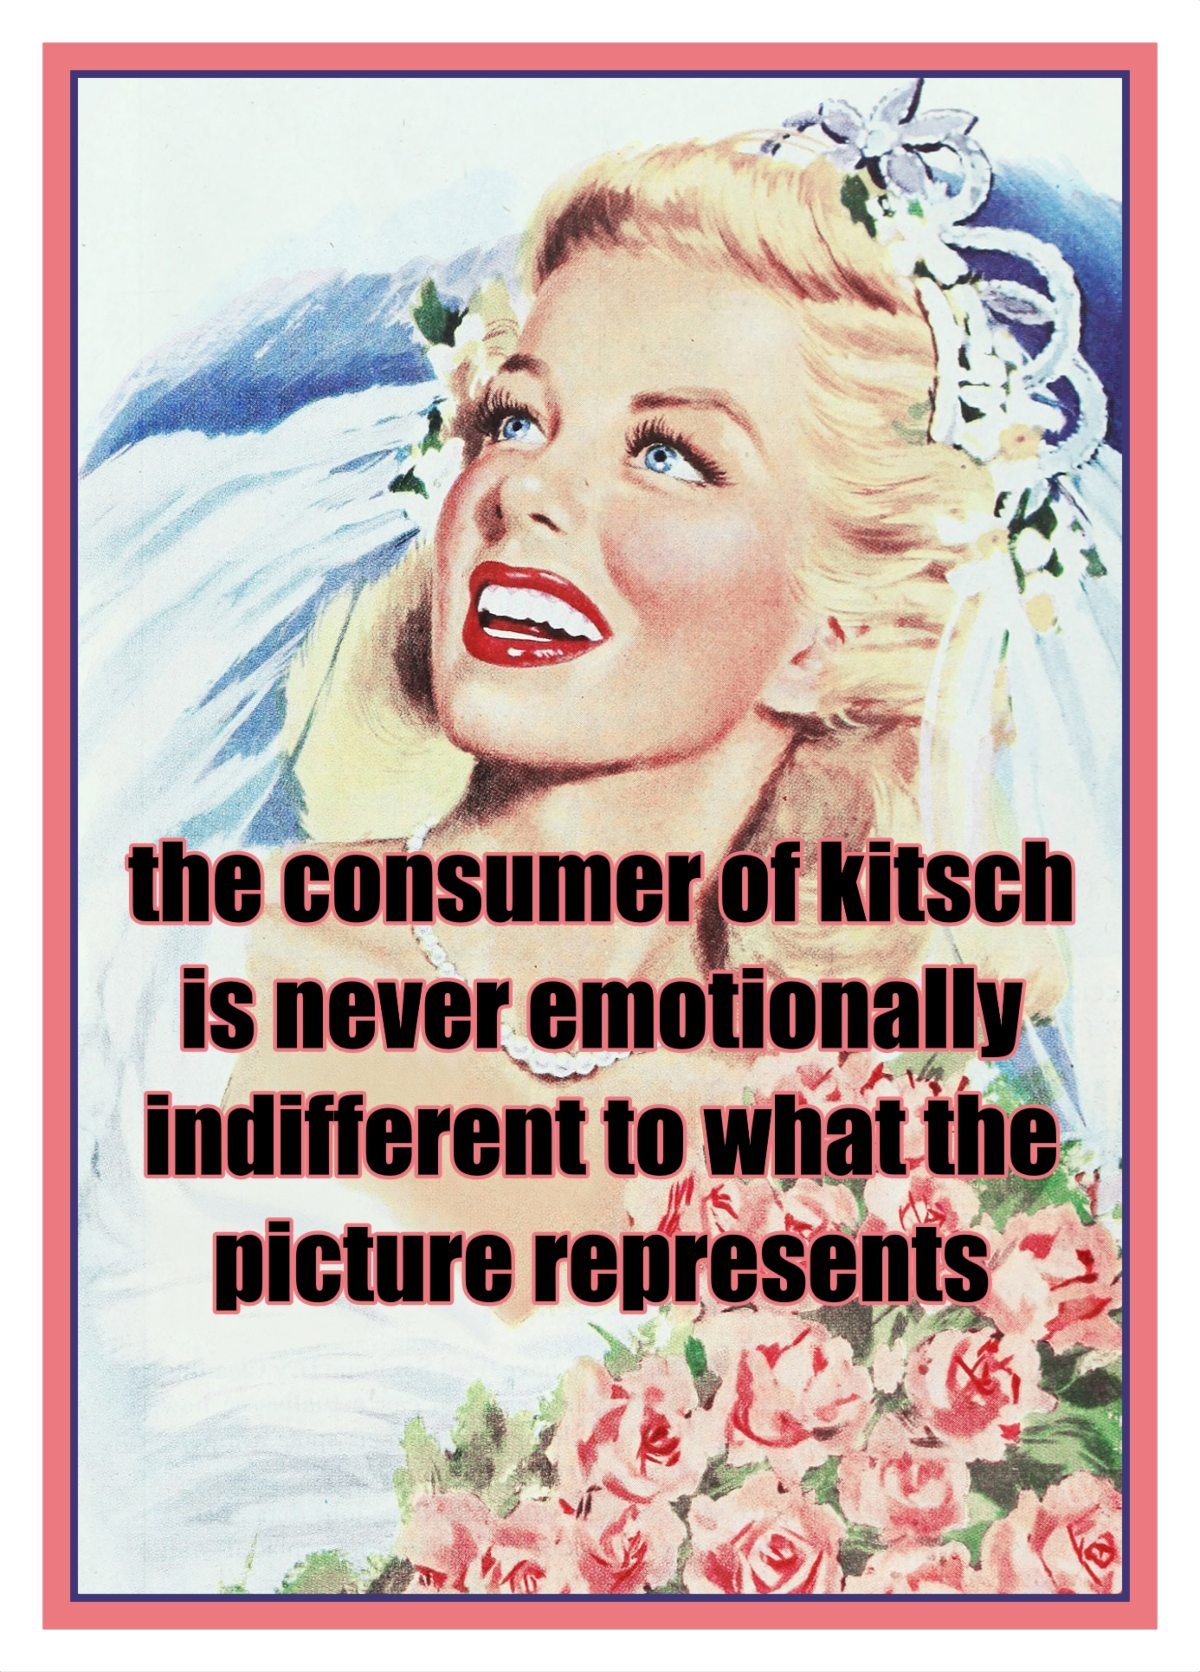 the consumer of kitsch is never emotionally indifferent to what the picture represents.